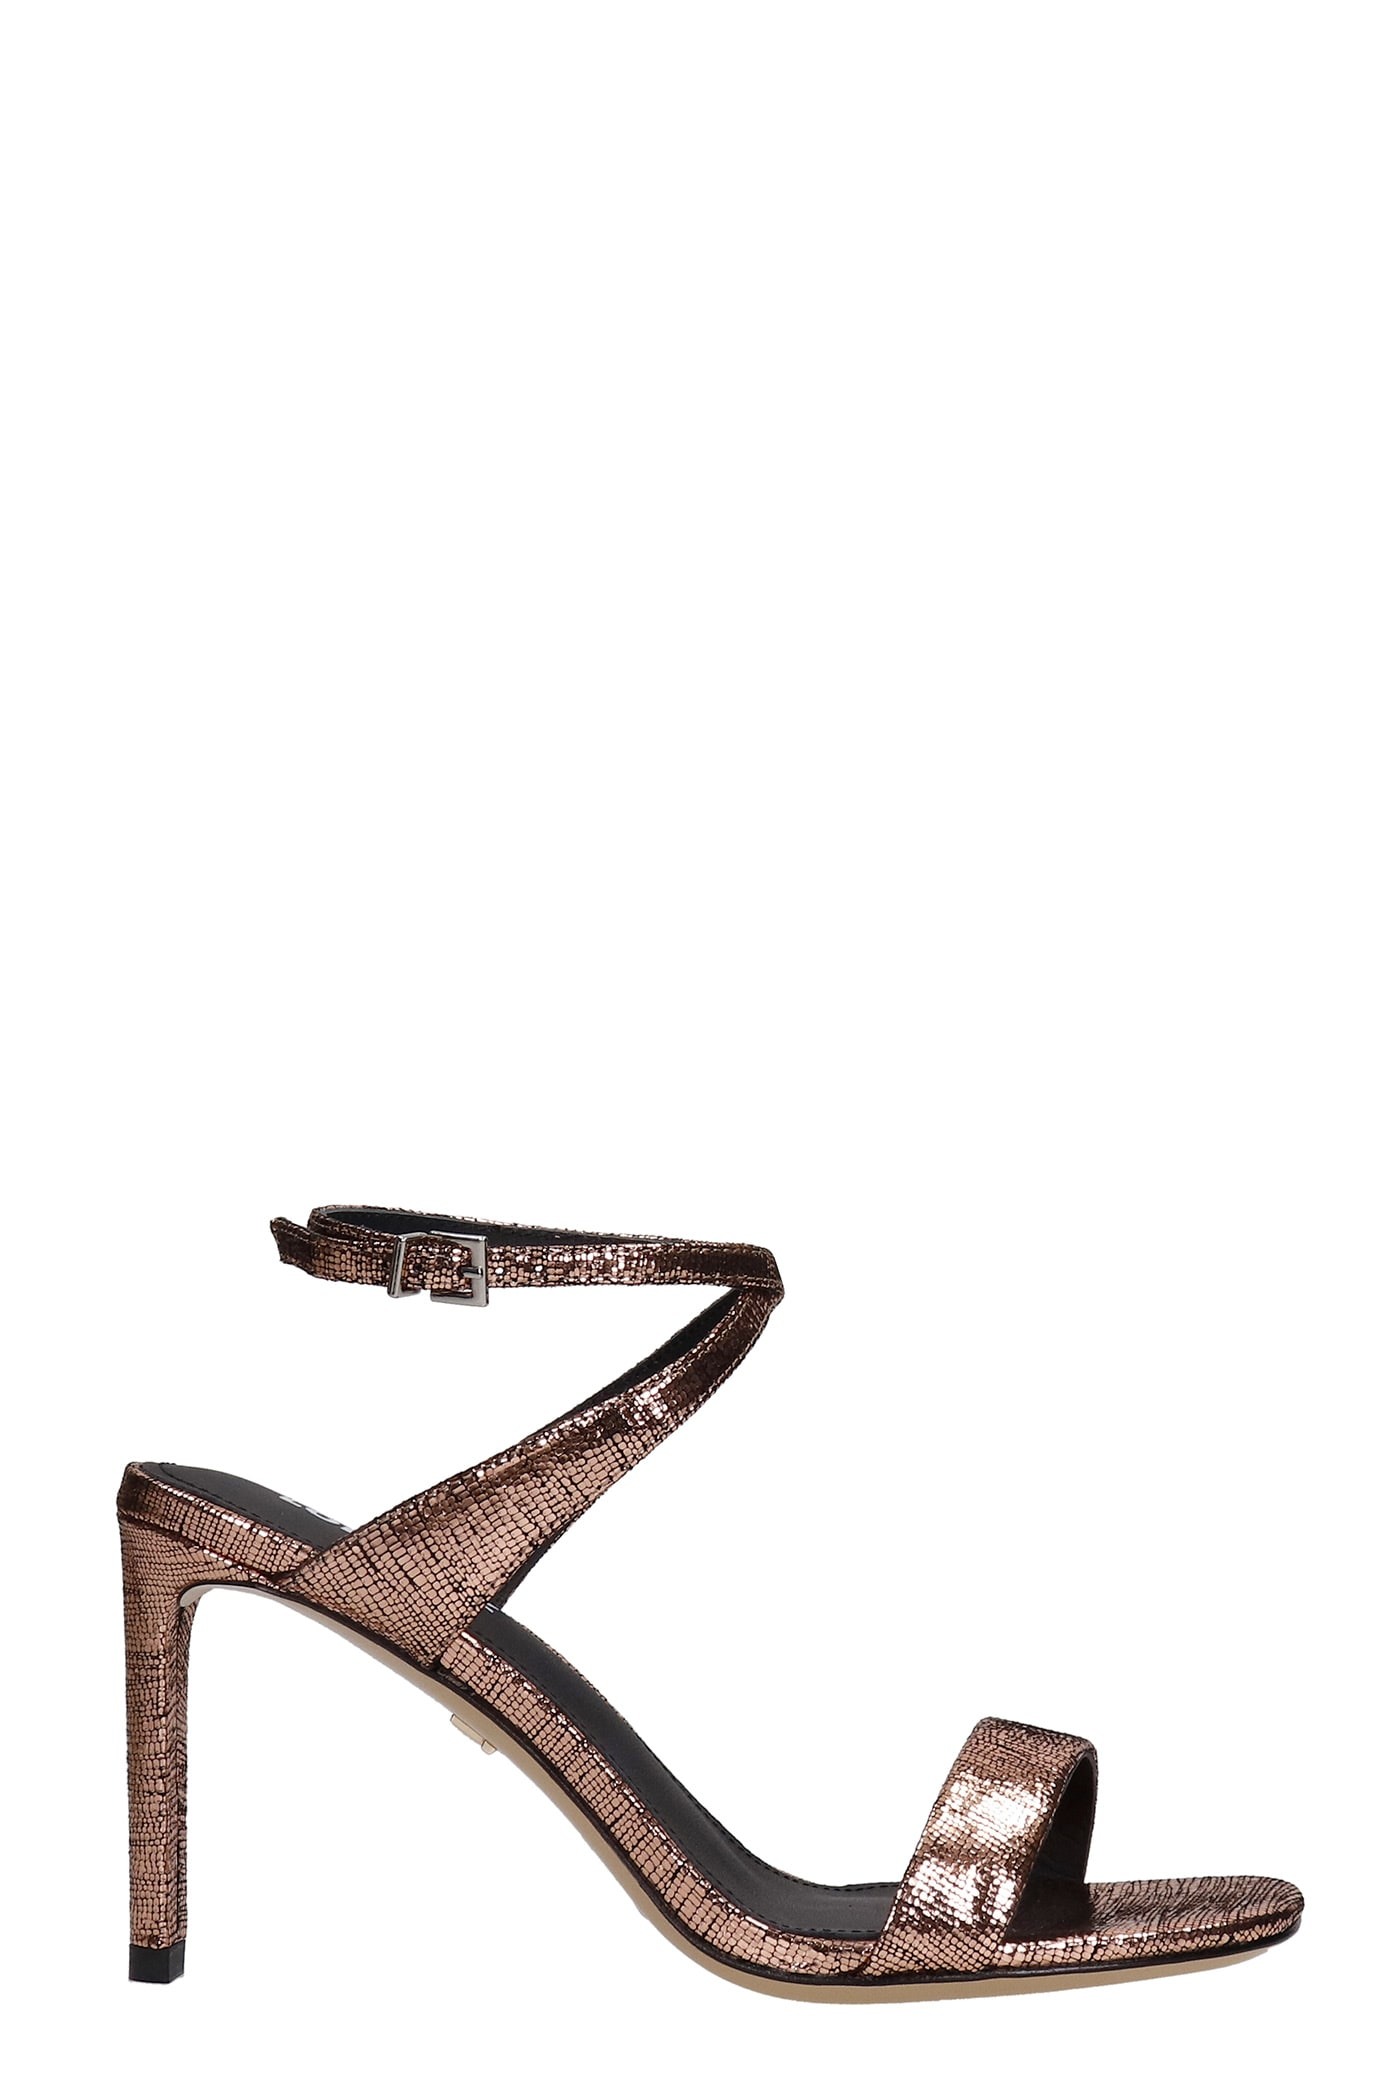 Sandals In Copper Leather